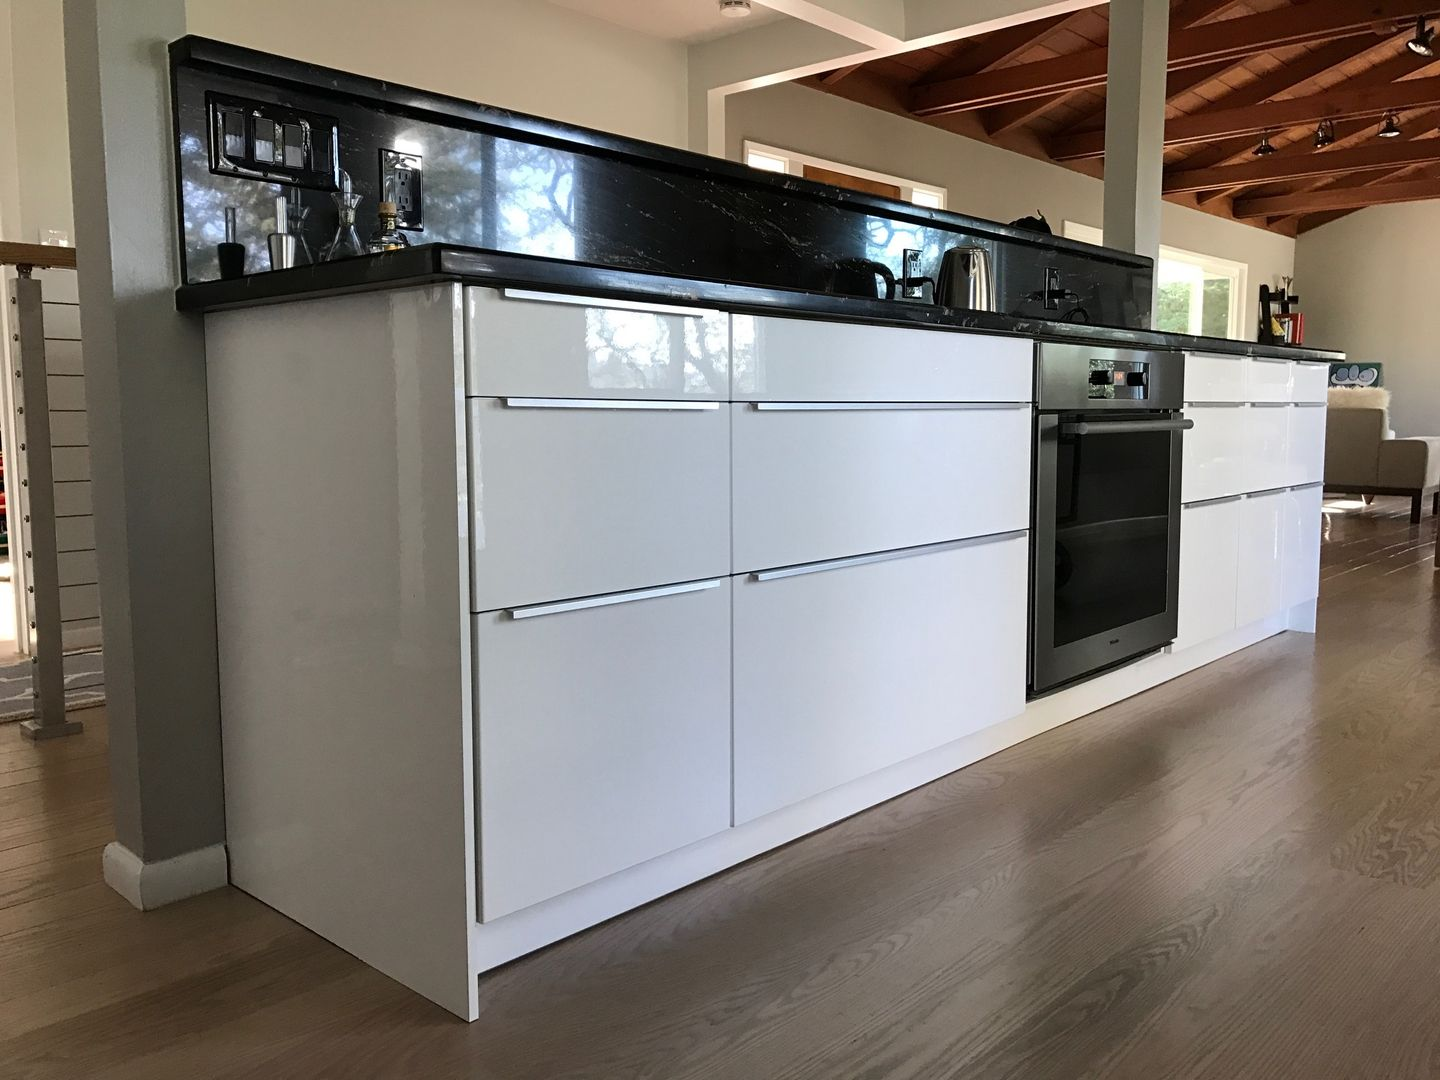 Finished and completed IKEA kitchen Sektion